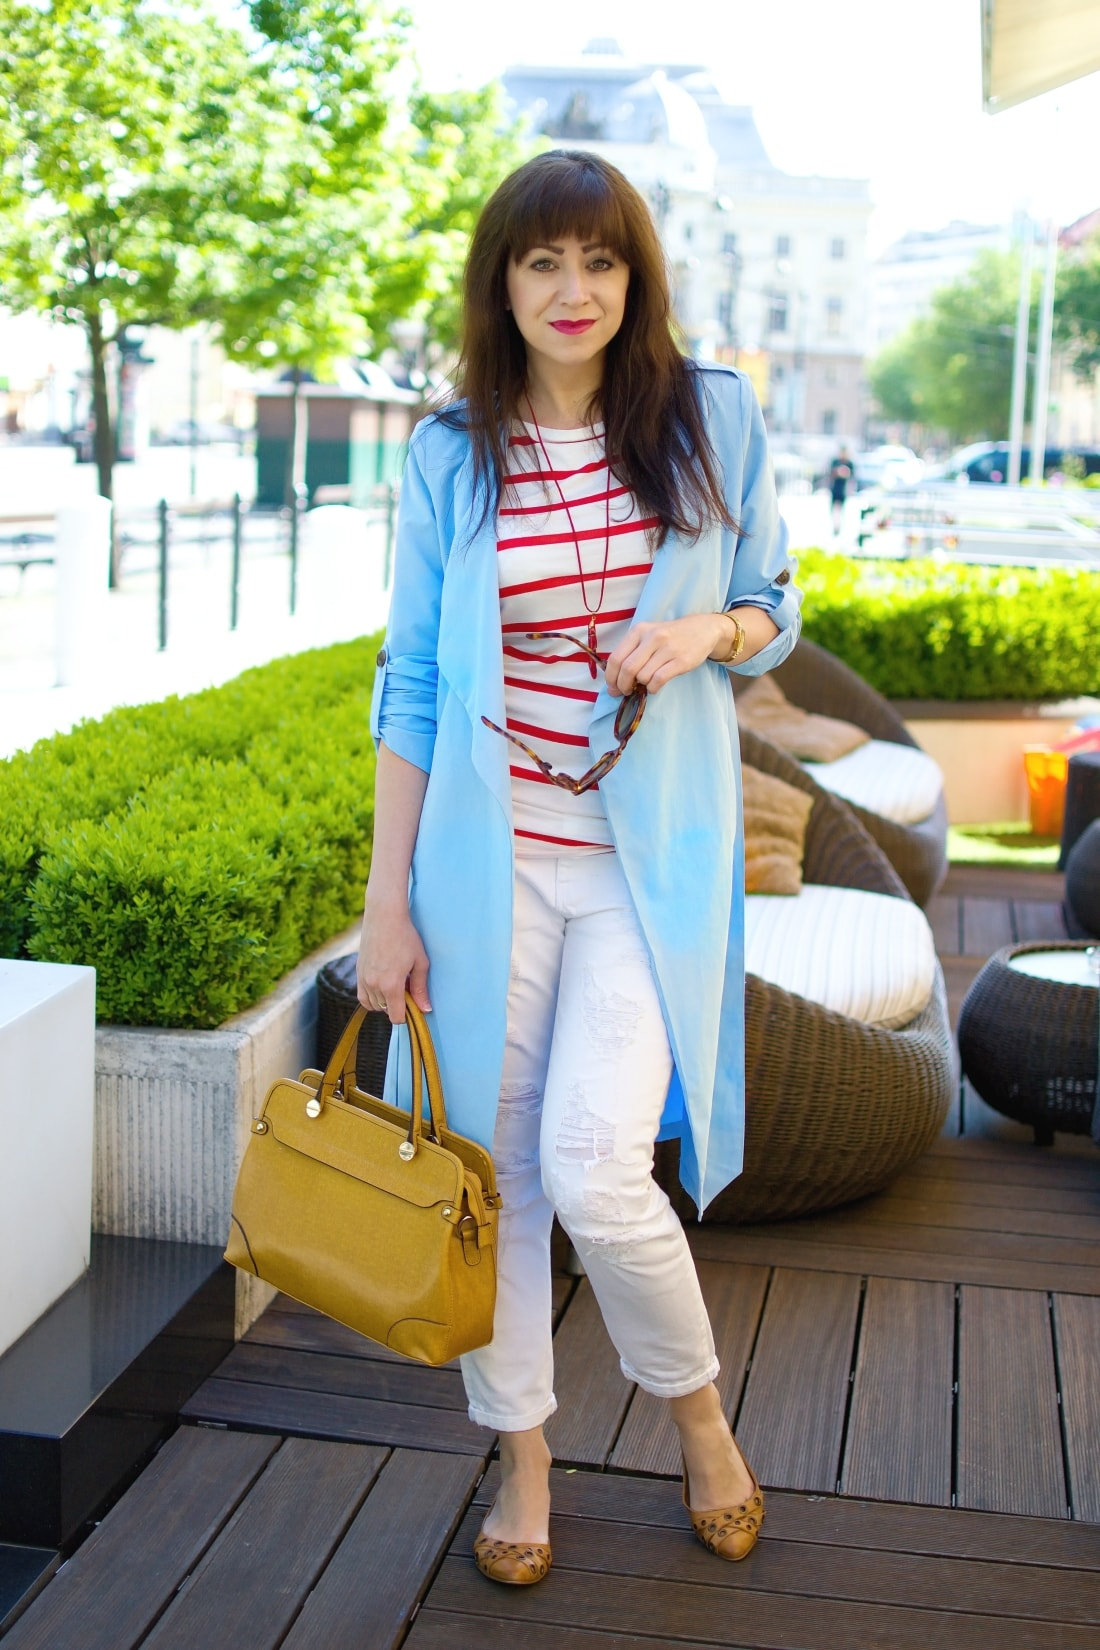 katharine-fashion-is-beautiful-blog-stylovy-trenckot-5-blogger